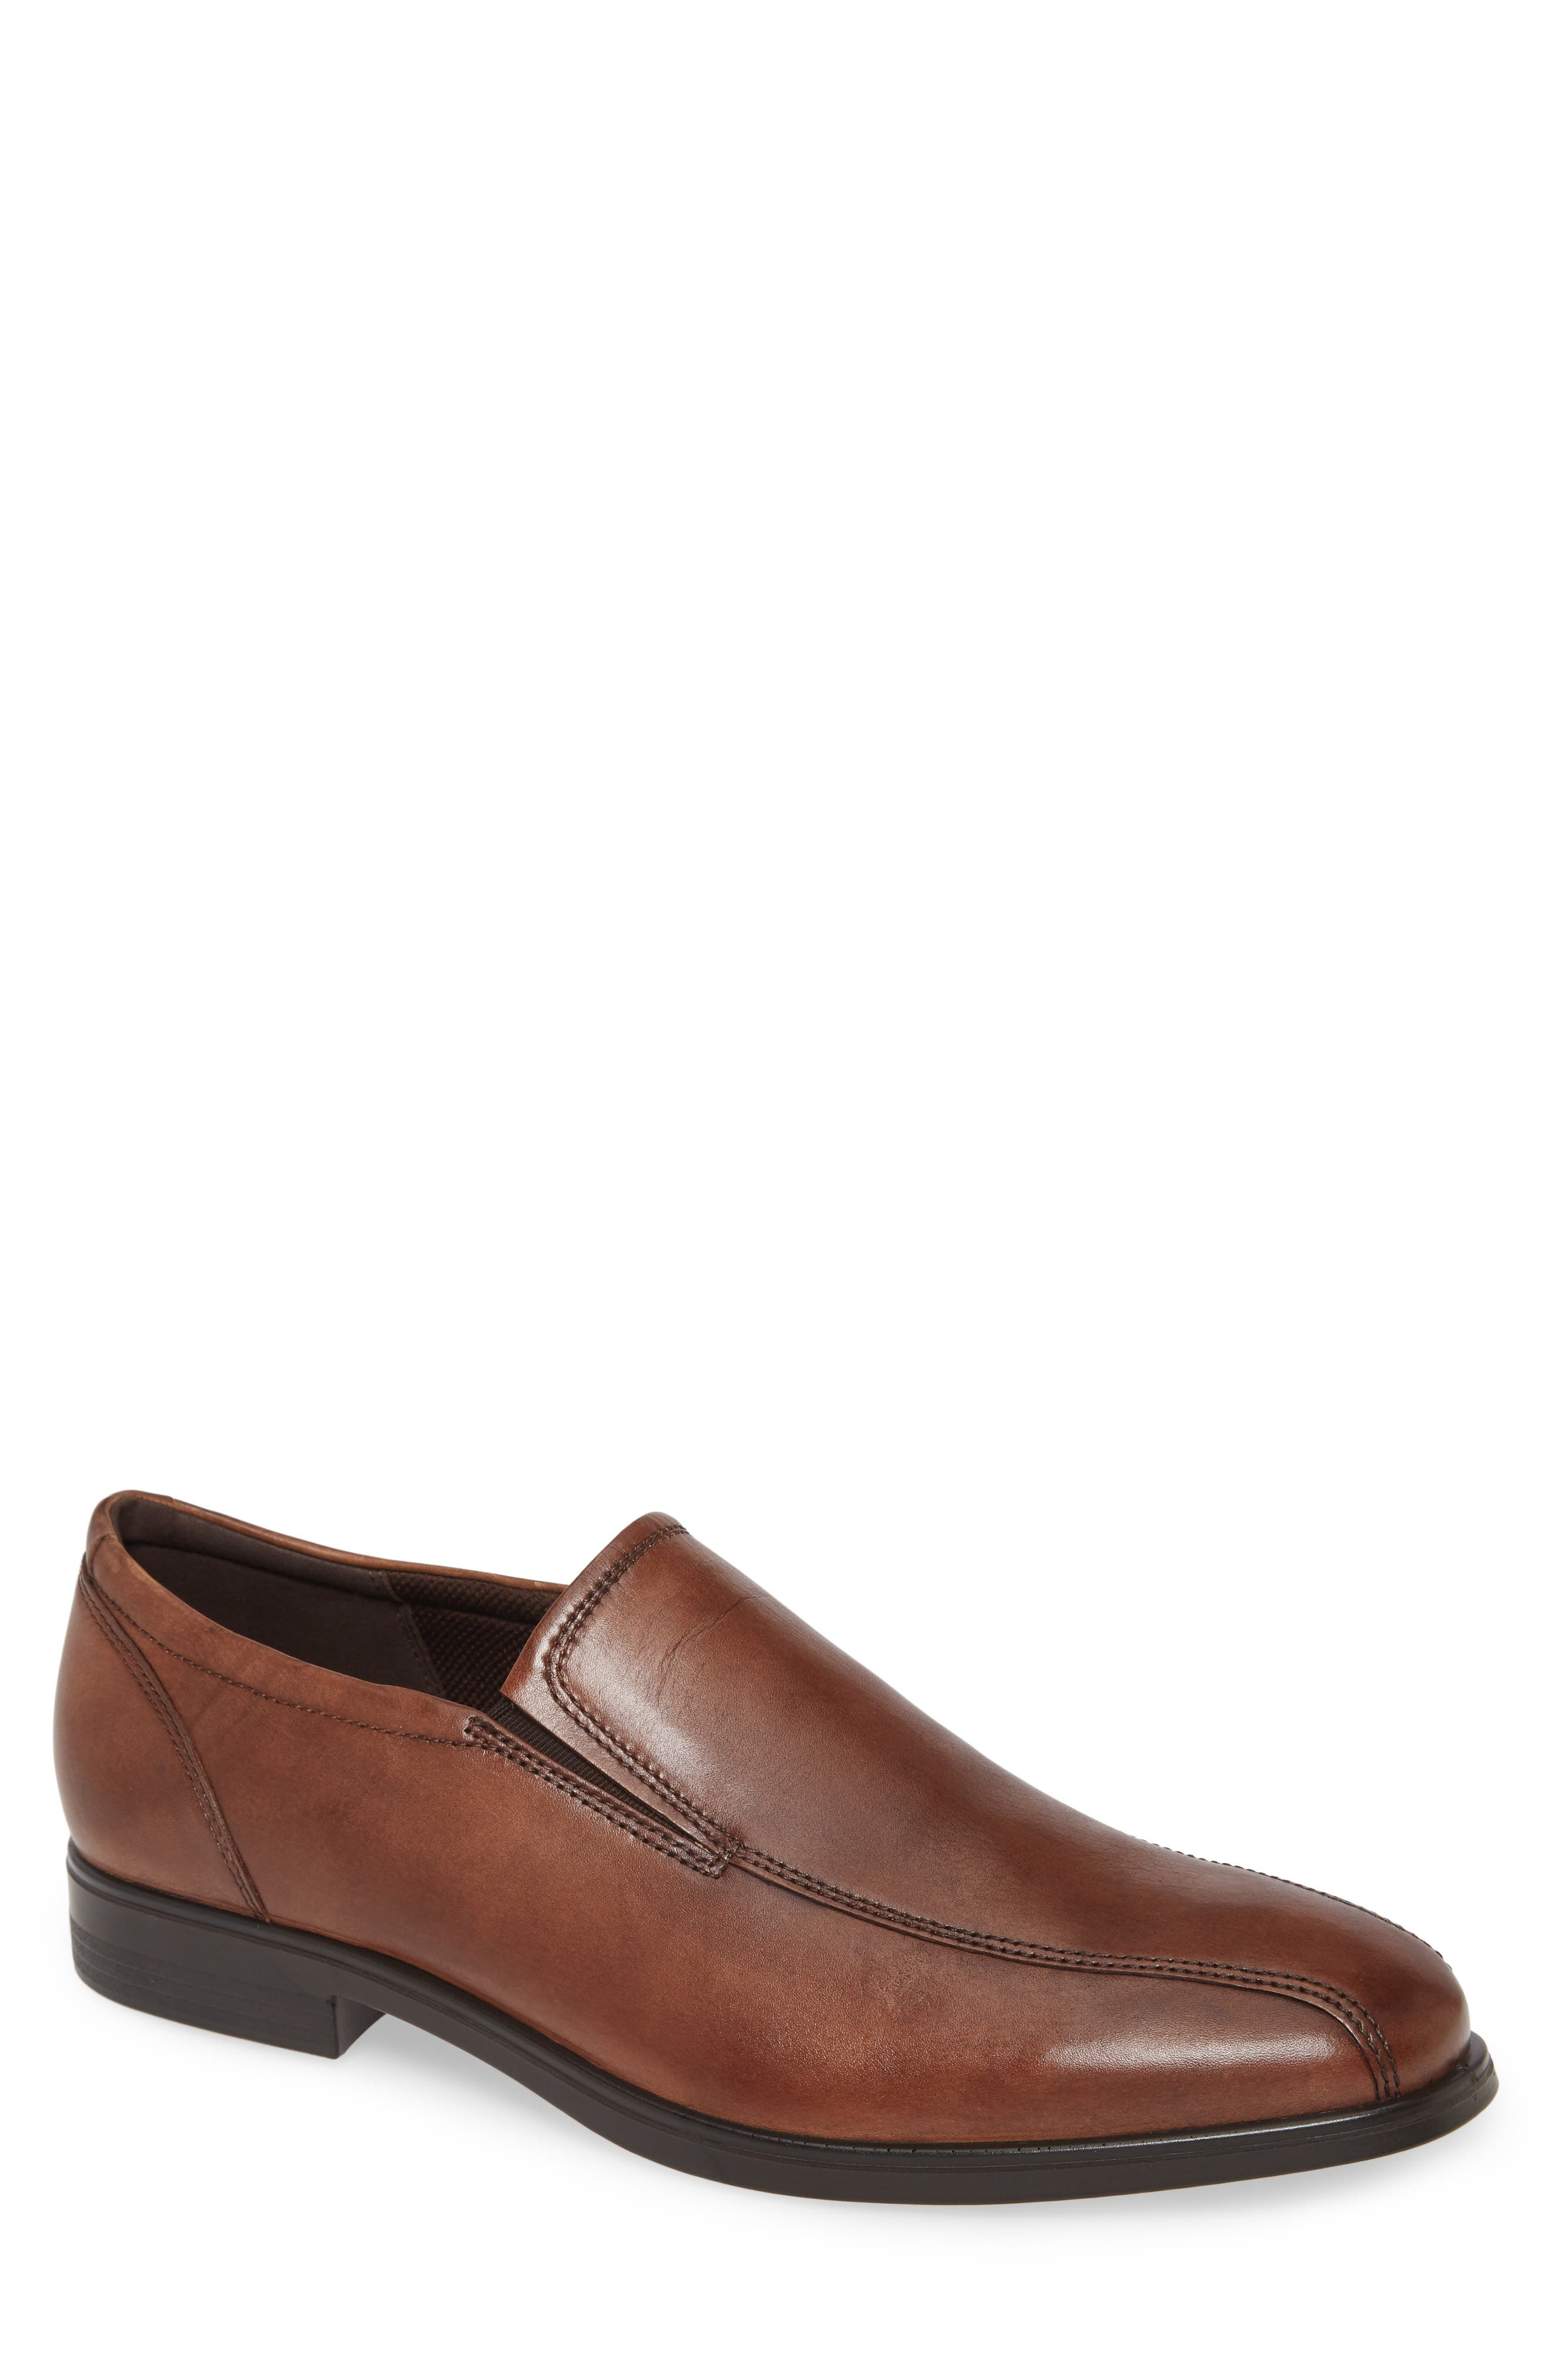 Image of ECCO Queenstown Bike Toe Slip-On Leather Loafer